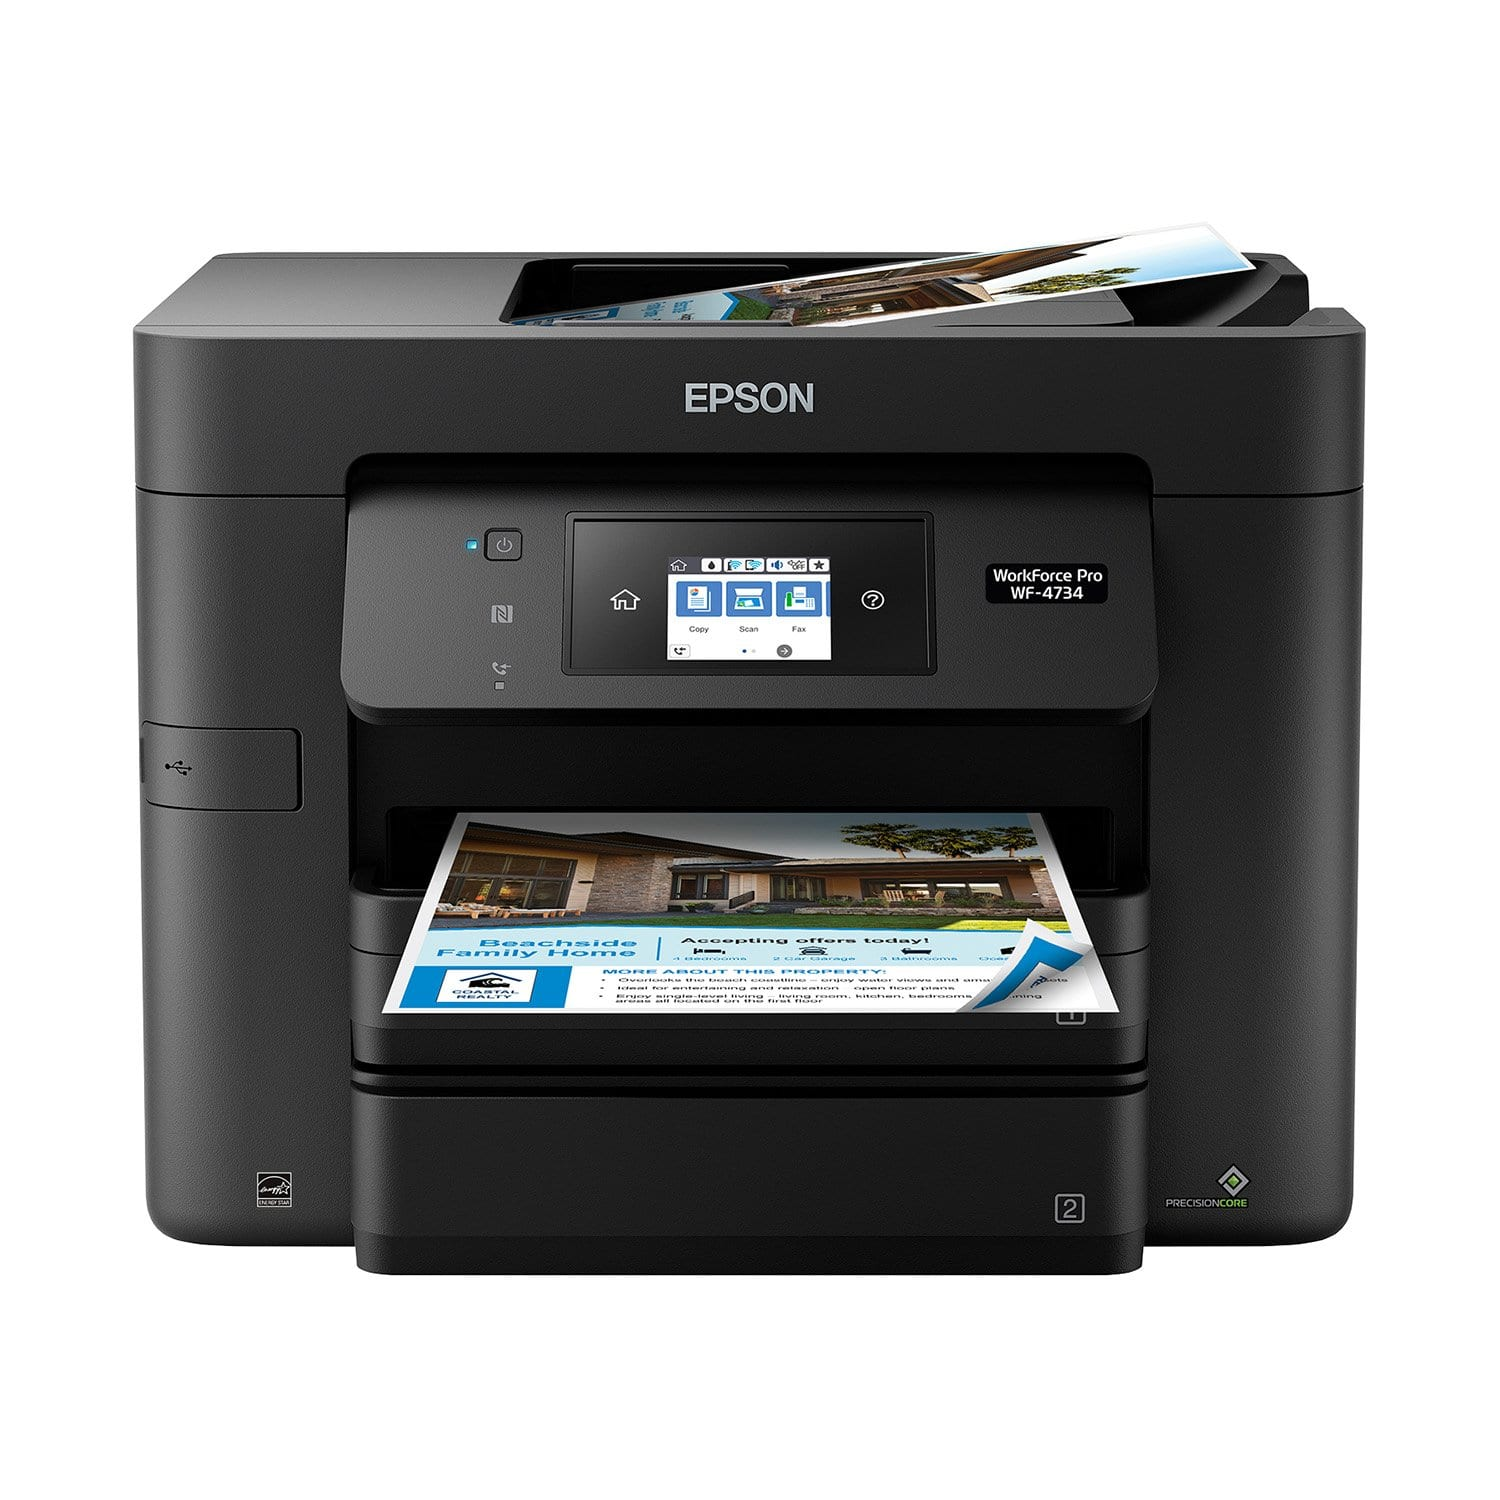 Epson WorkForce Pro WF-4734 Multifunction Wireless Inkjet Printer -Samsclub $90.01